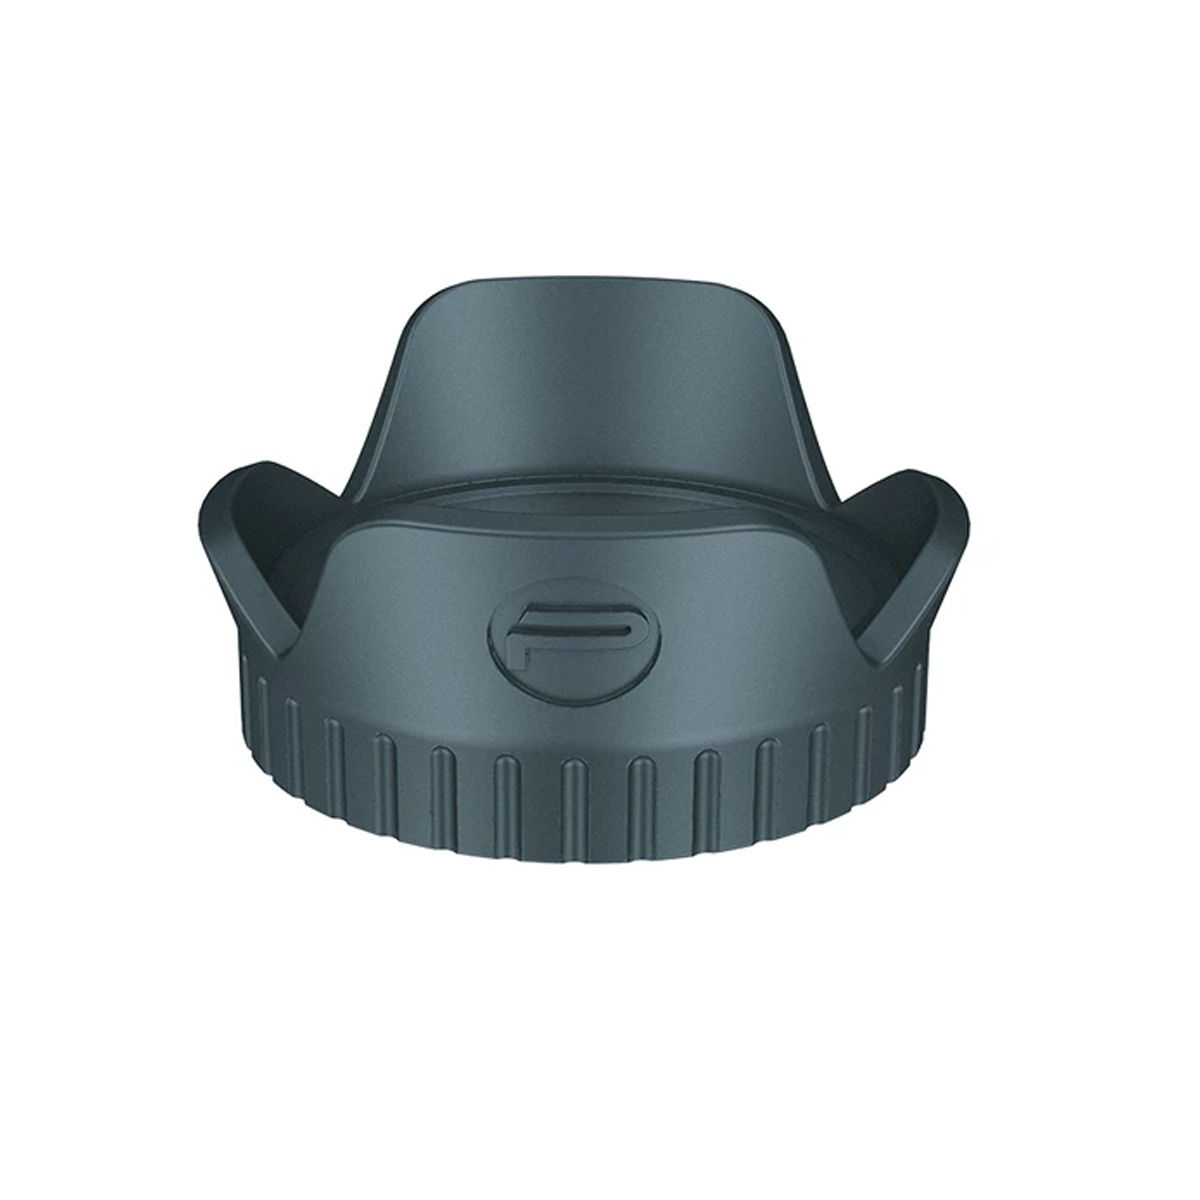 PGYTECH Camera Sunshade Protective Cover Cap PGYTECH Lens Hood Compatible With DJI Osmo Action Gimbal Camera Accessories-in Len Caps from Consumer Electronics